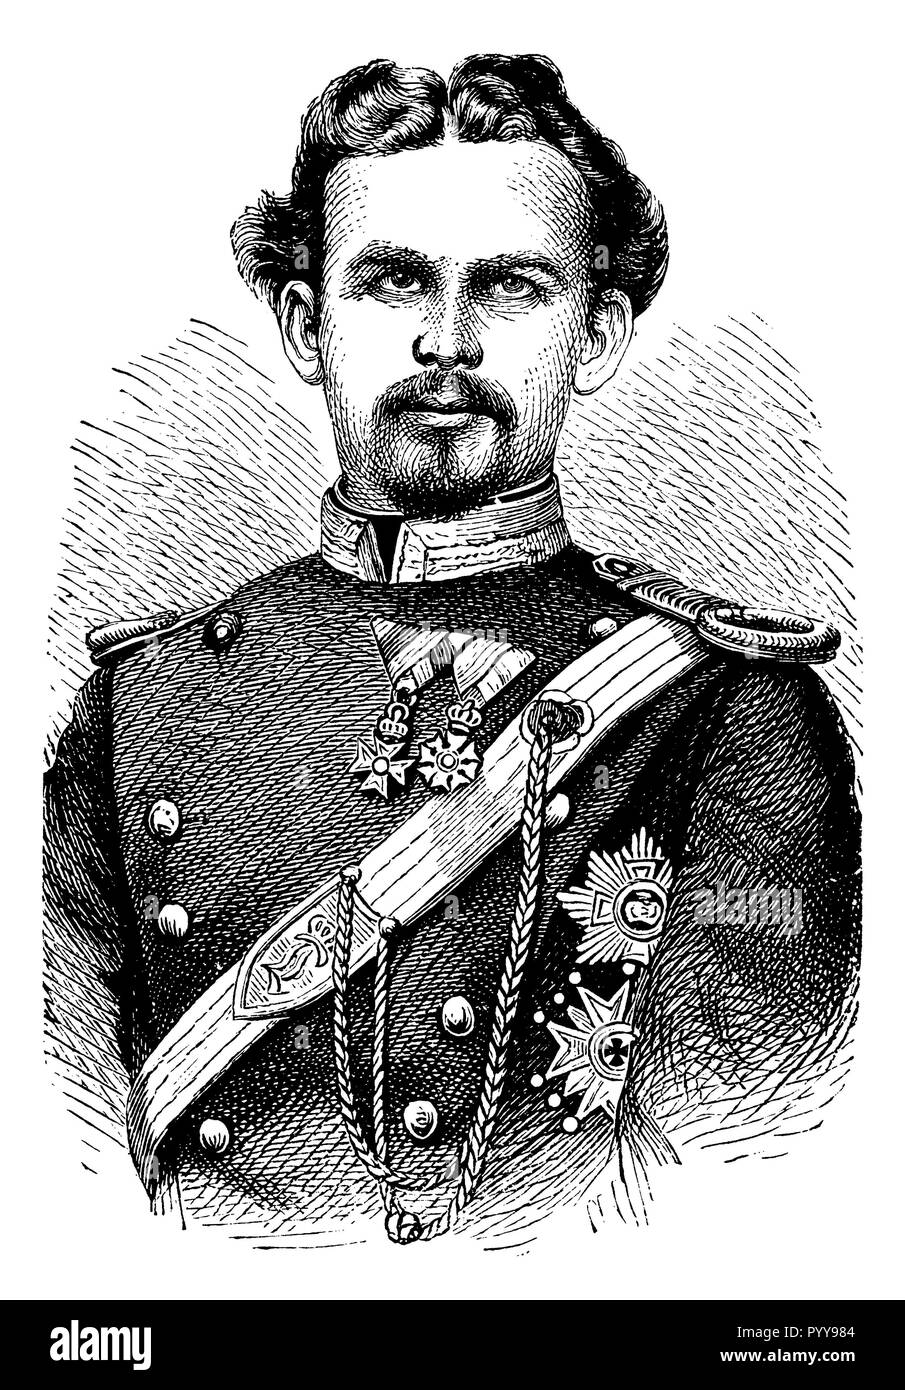 Ludwig II, King of Bavaria (1845 - 1886), the 'fairytale king'. Wood engraving after a photograph,   1899 Stock Photo